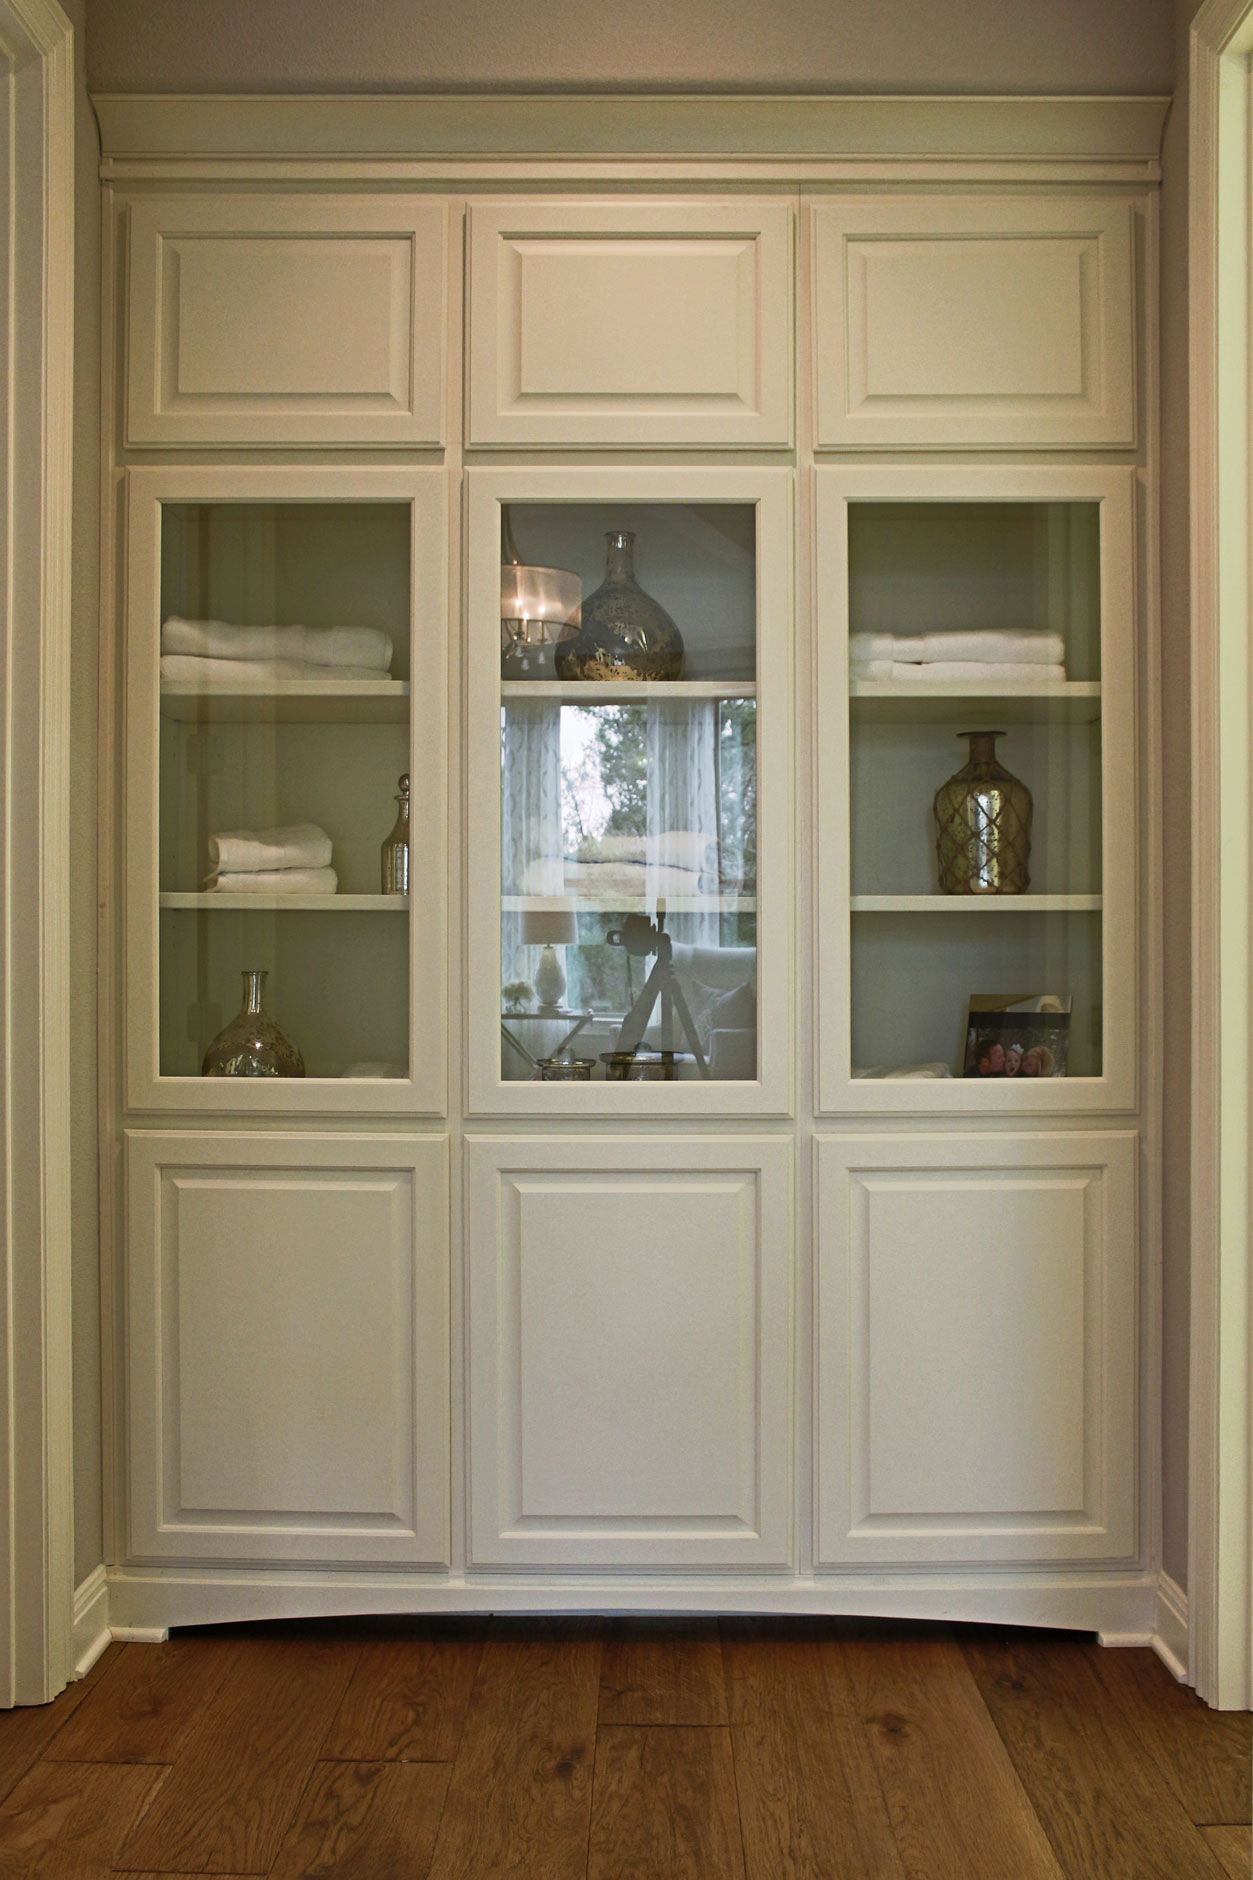 Burrows Cabinets Floor To Ceiling Linen Cabinets W Glass